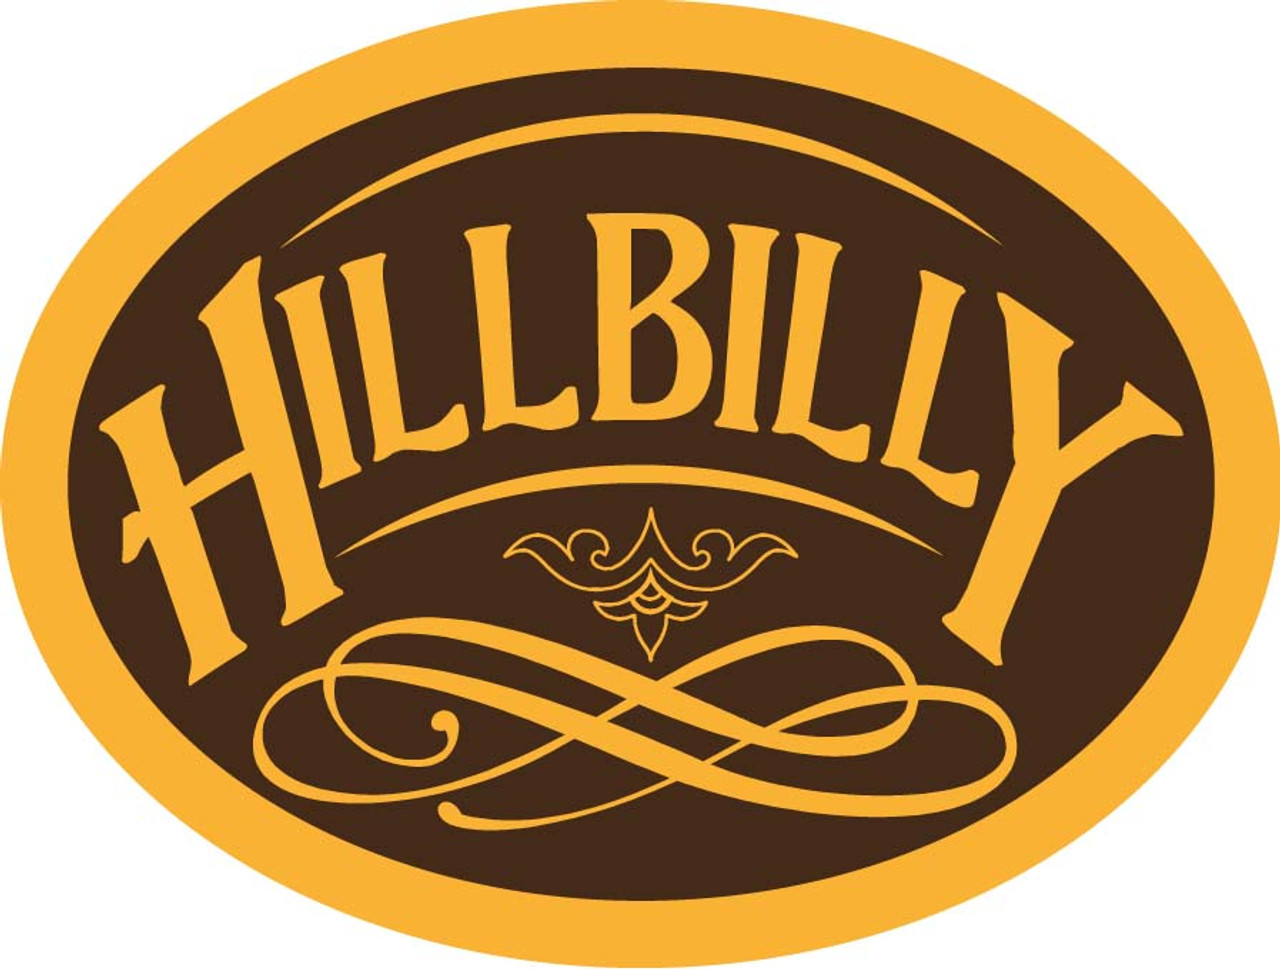 Hillbilly Buckle (RESTRICTED)